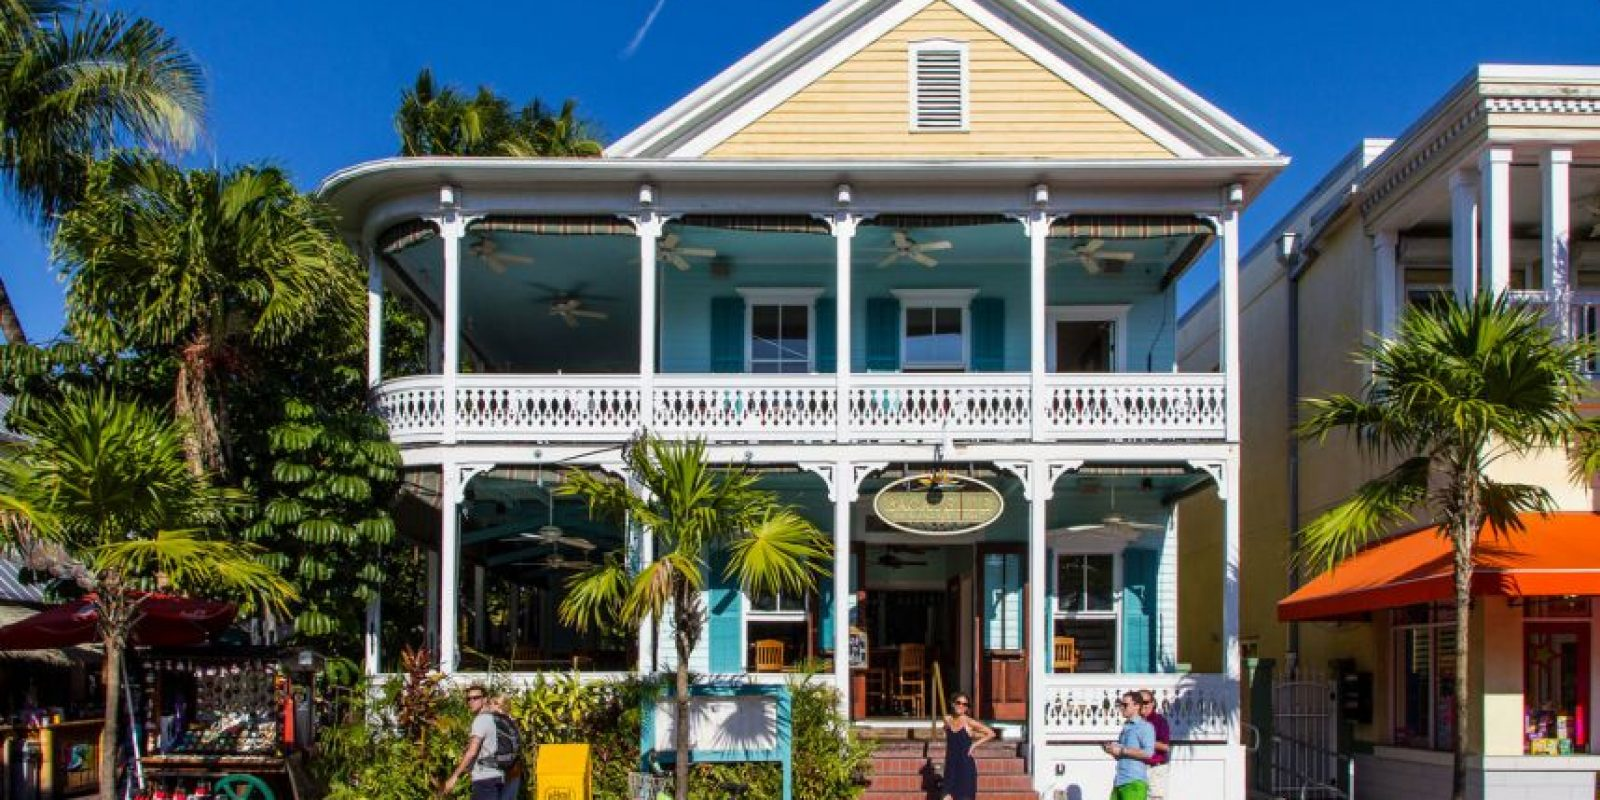 30. Key West, Florida, con 84.983 puntos. Foto: Vía flickr.com